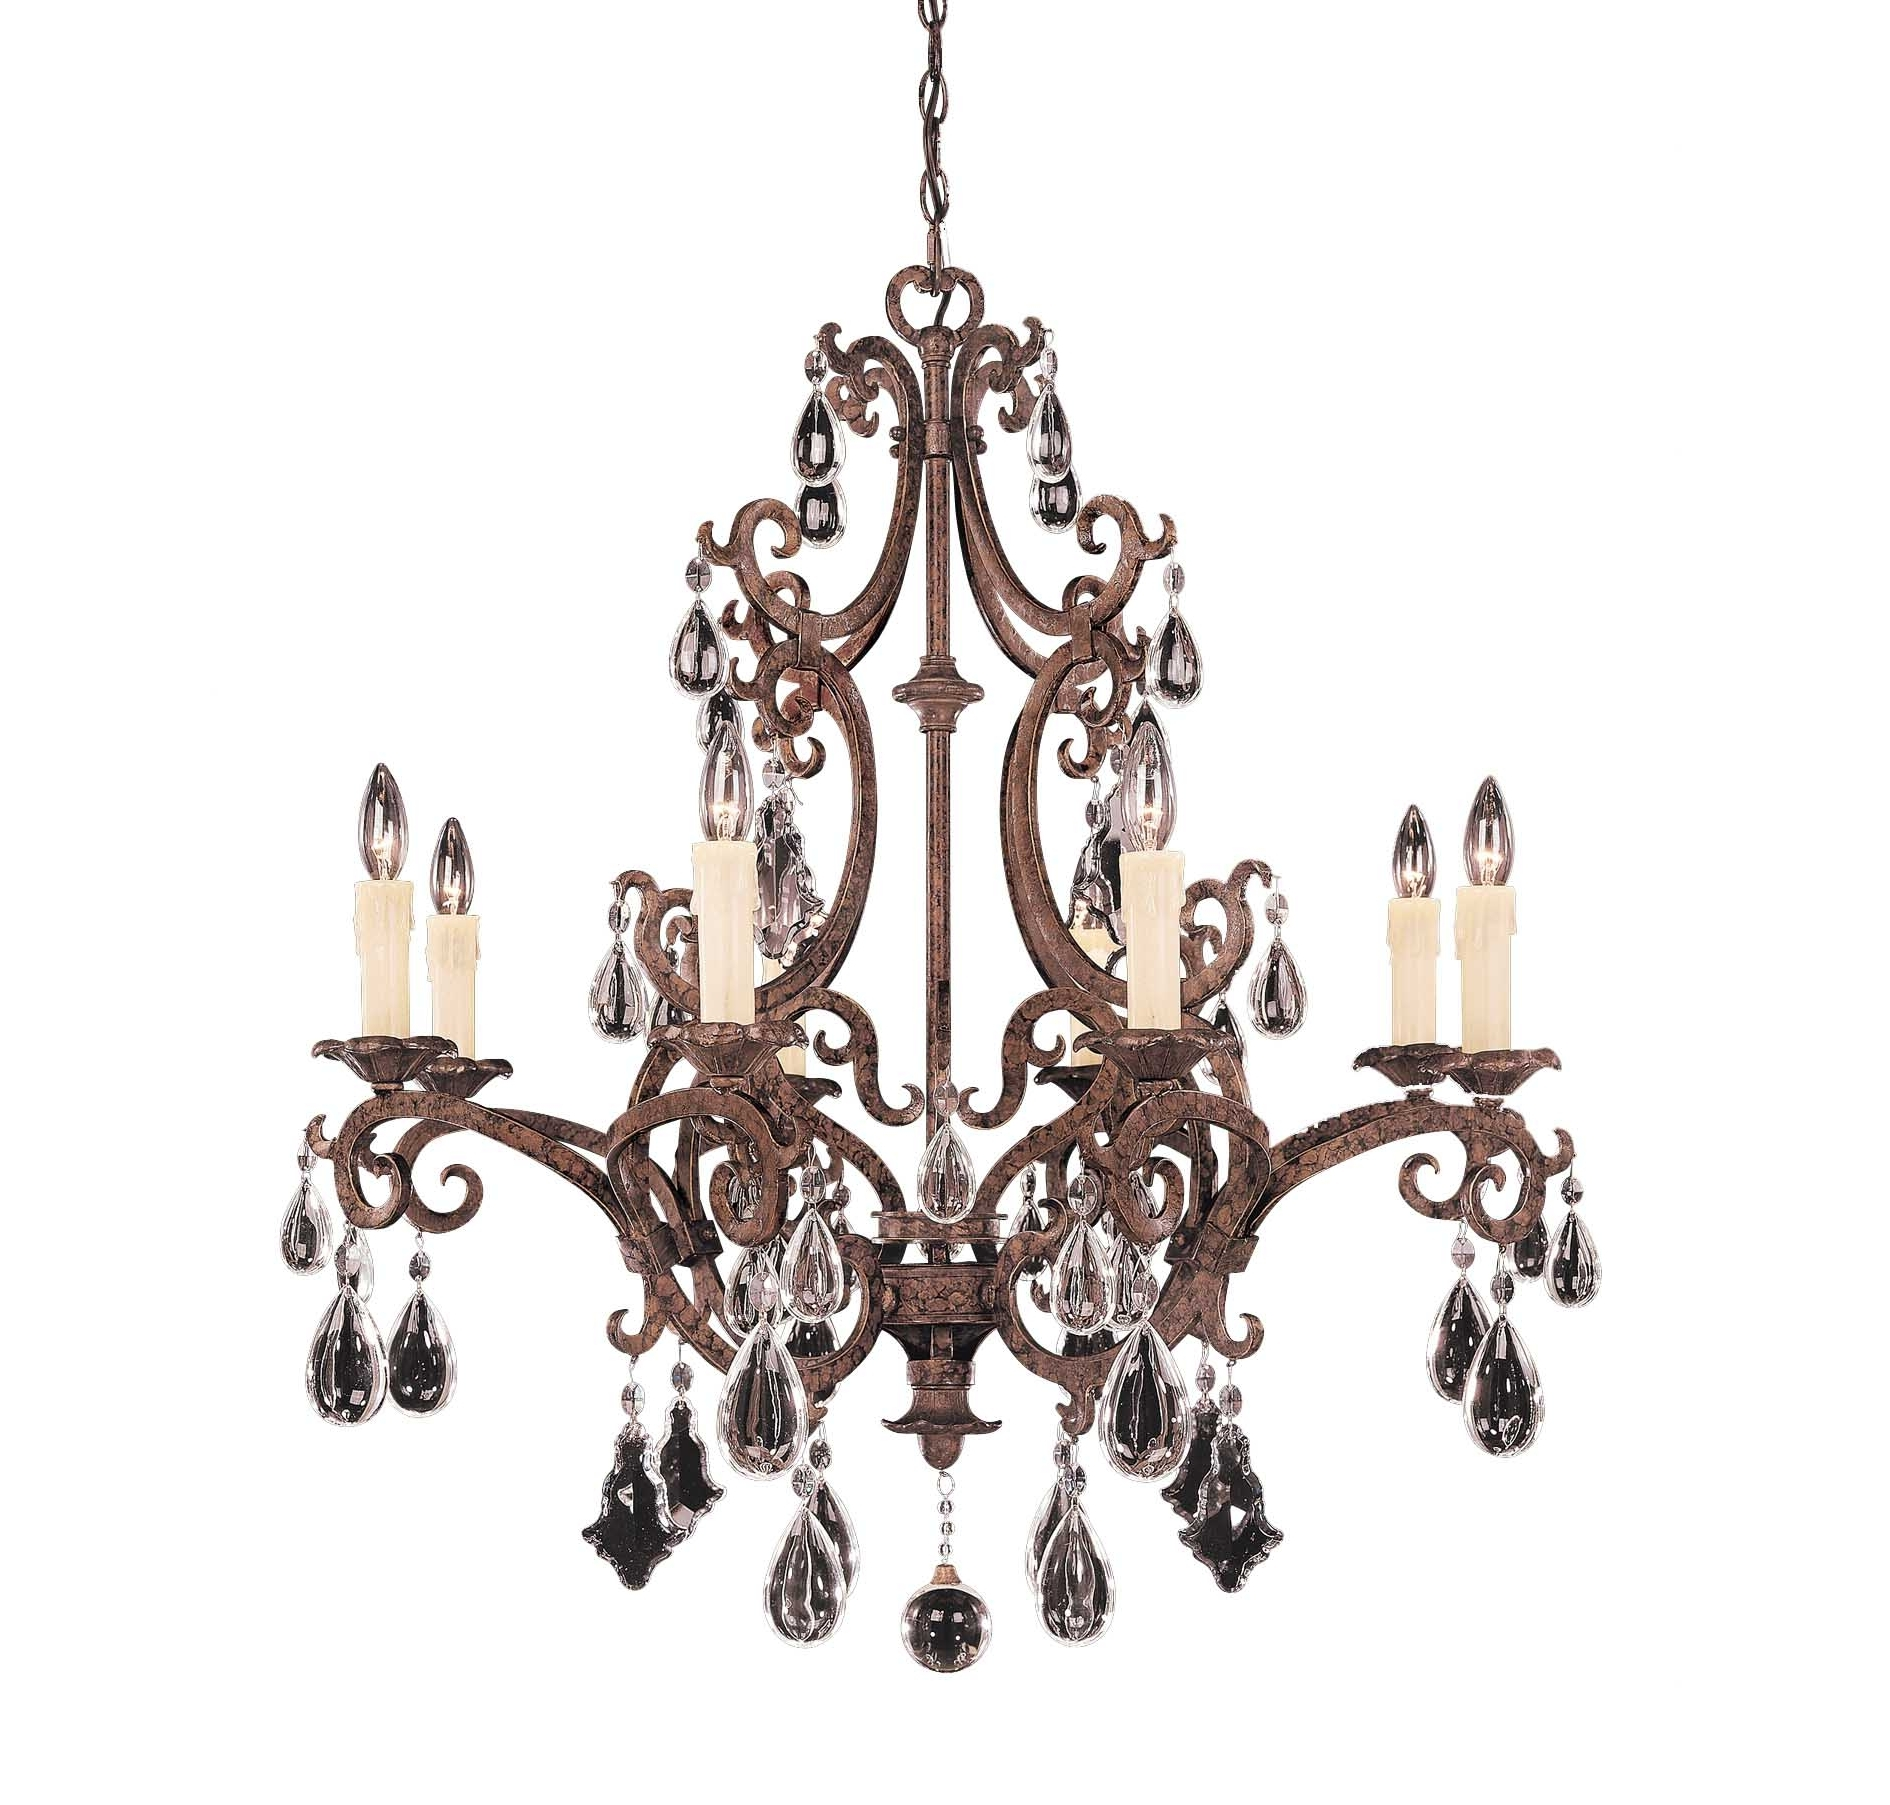 The Fine Fabric Of Space And Taste Of Crystal Chandeliers – Blog Pertaining To Well Known Traditional Chandeliers (View 16 of 20)